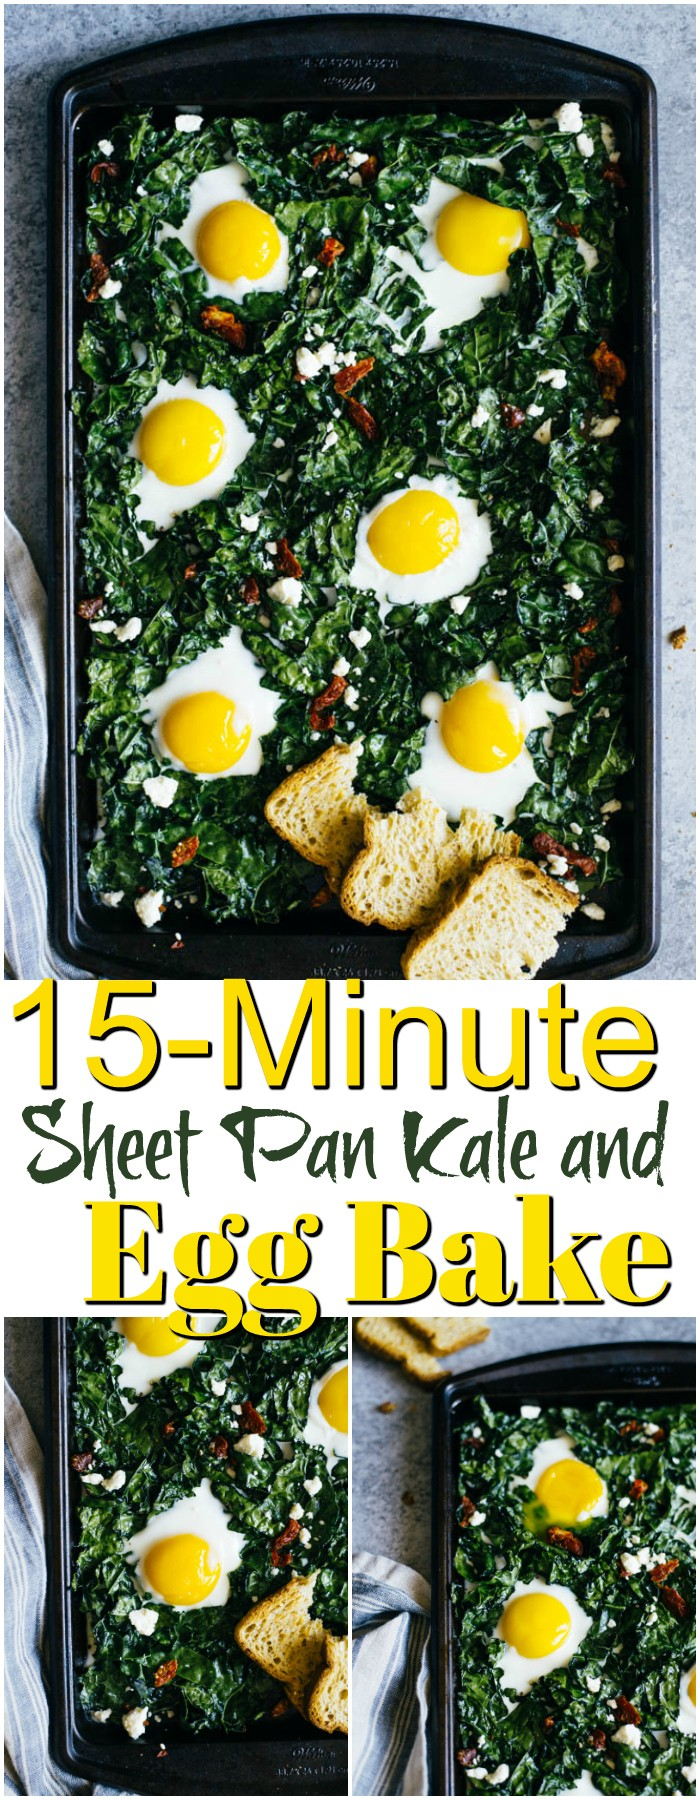 15-Minute Sheet Pan Kale and Egg Bake